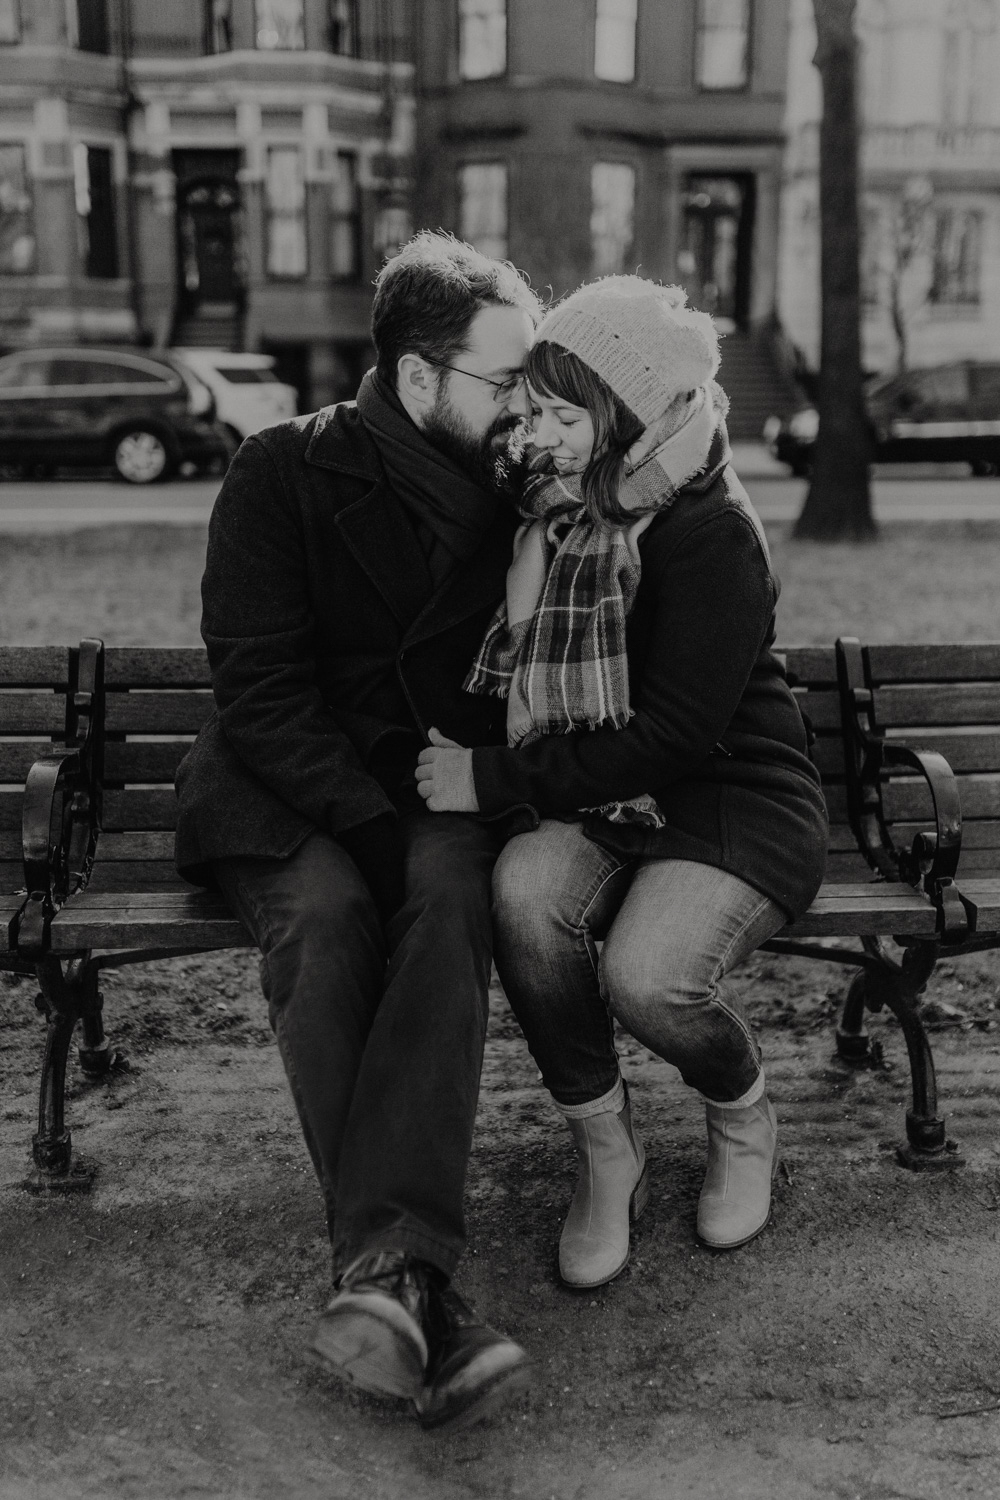 Winter engagement photo on a bench in Boston MA